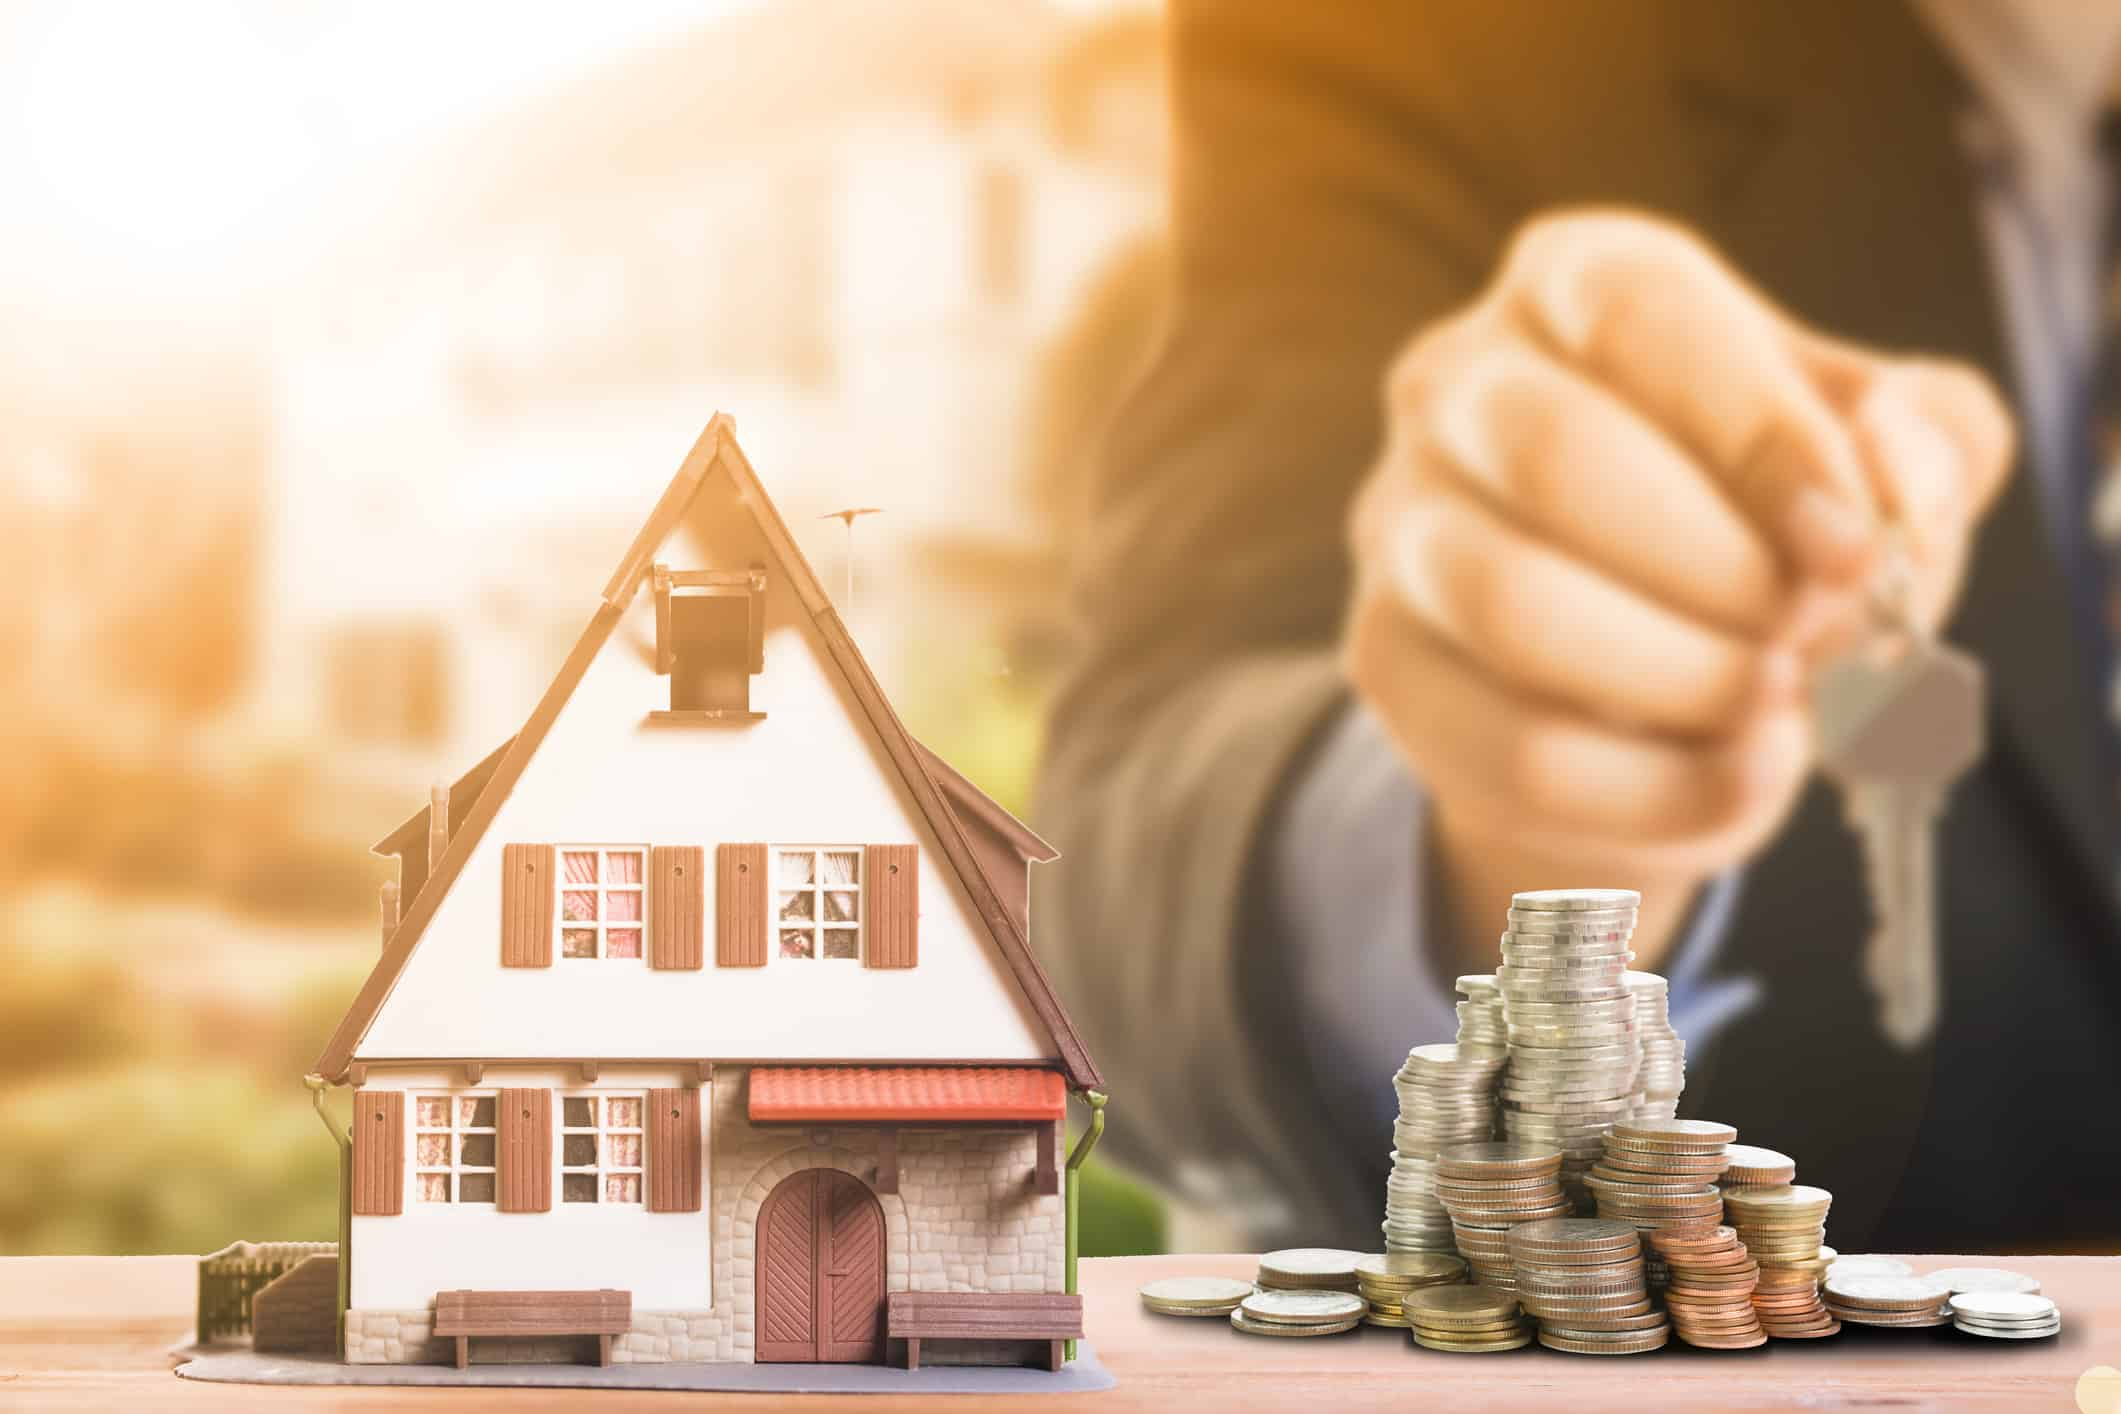 Mortgage rate trends: As interest rates climb, we keep buying